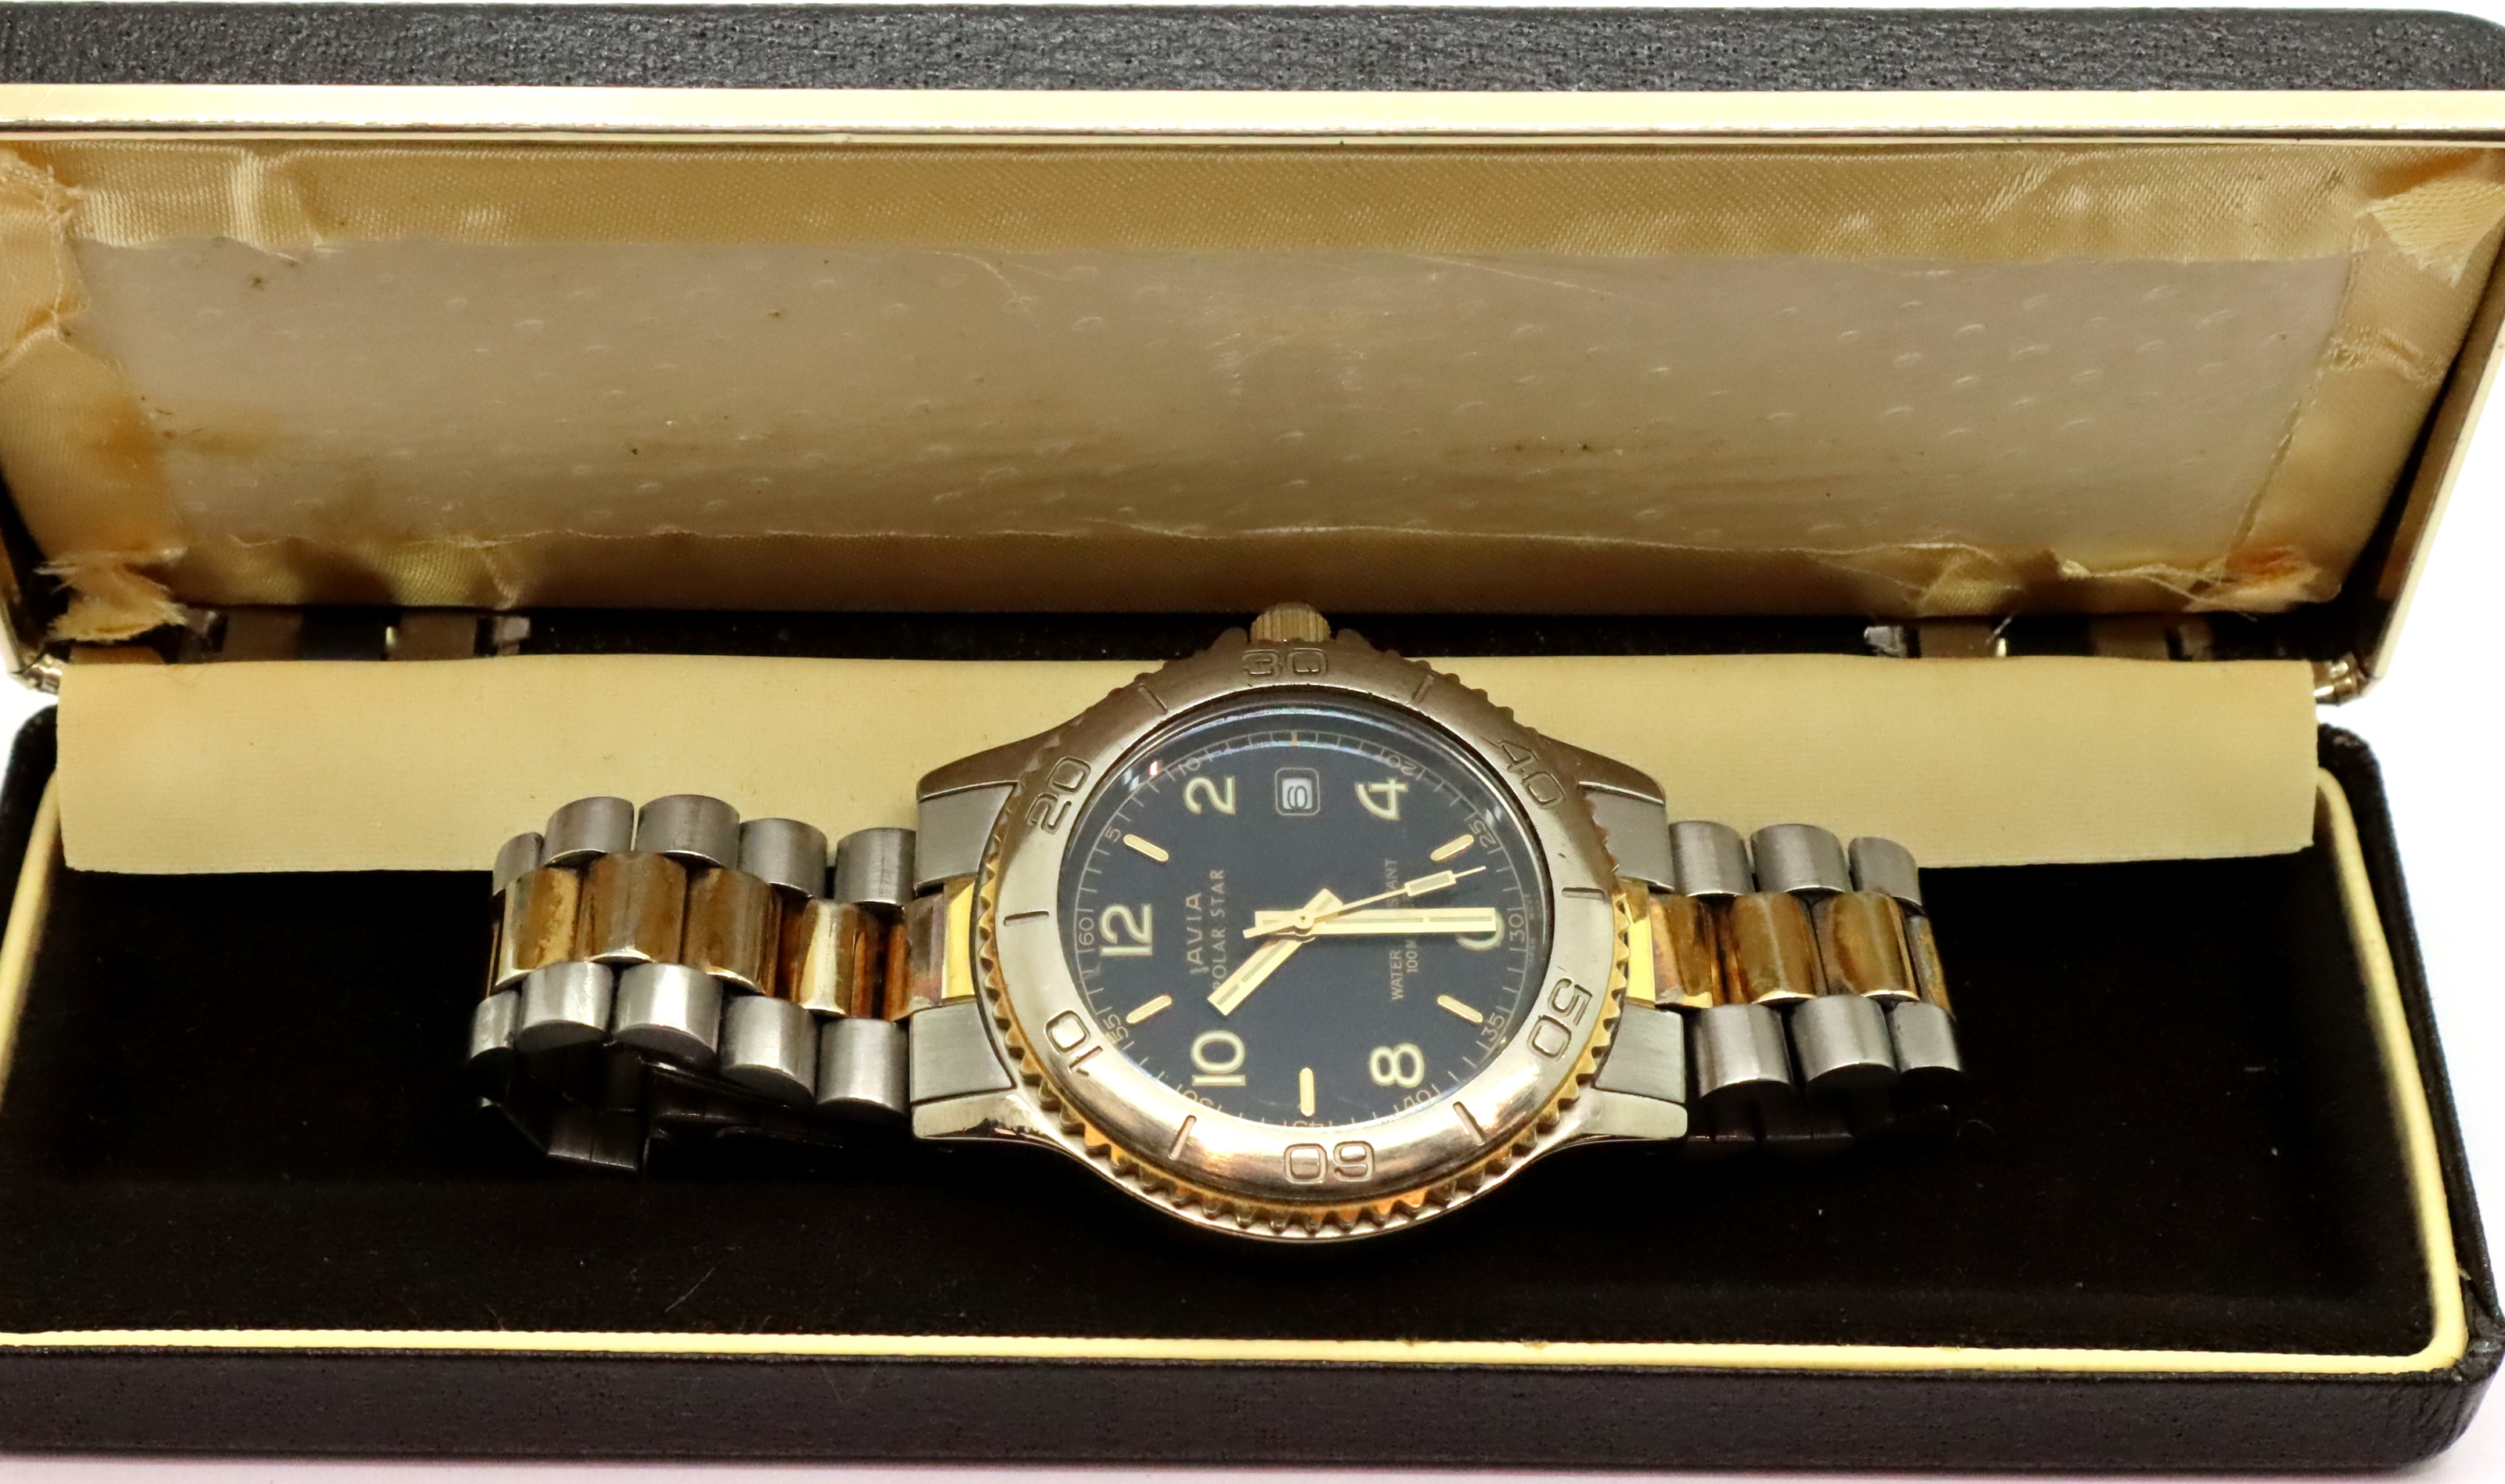 Gents Avia wristwatch, D: 3 cm. P&P Group 1 (£14+VAT for the first lot and £1+VAT for subsequent - Image 3 of 3